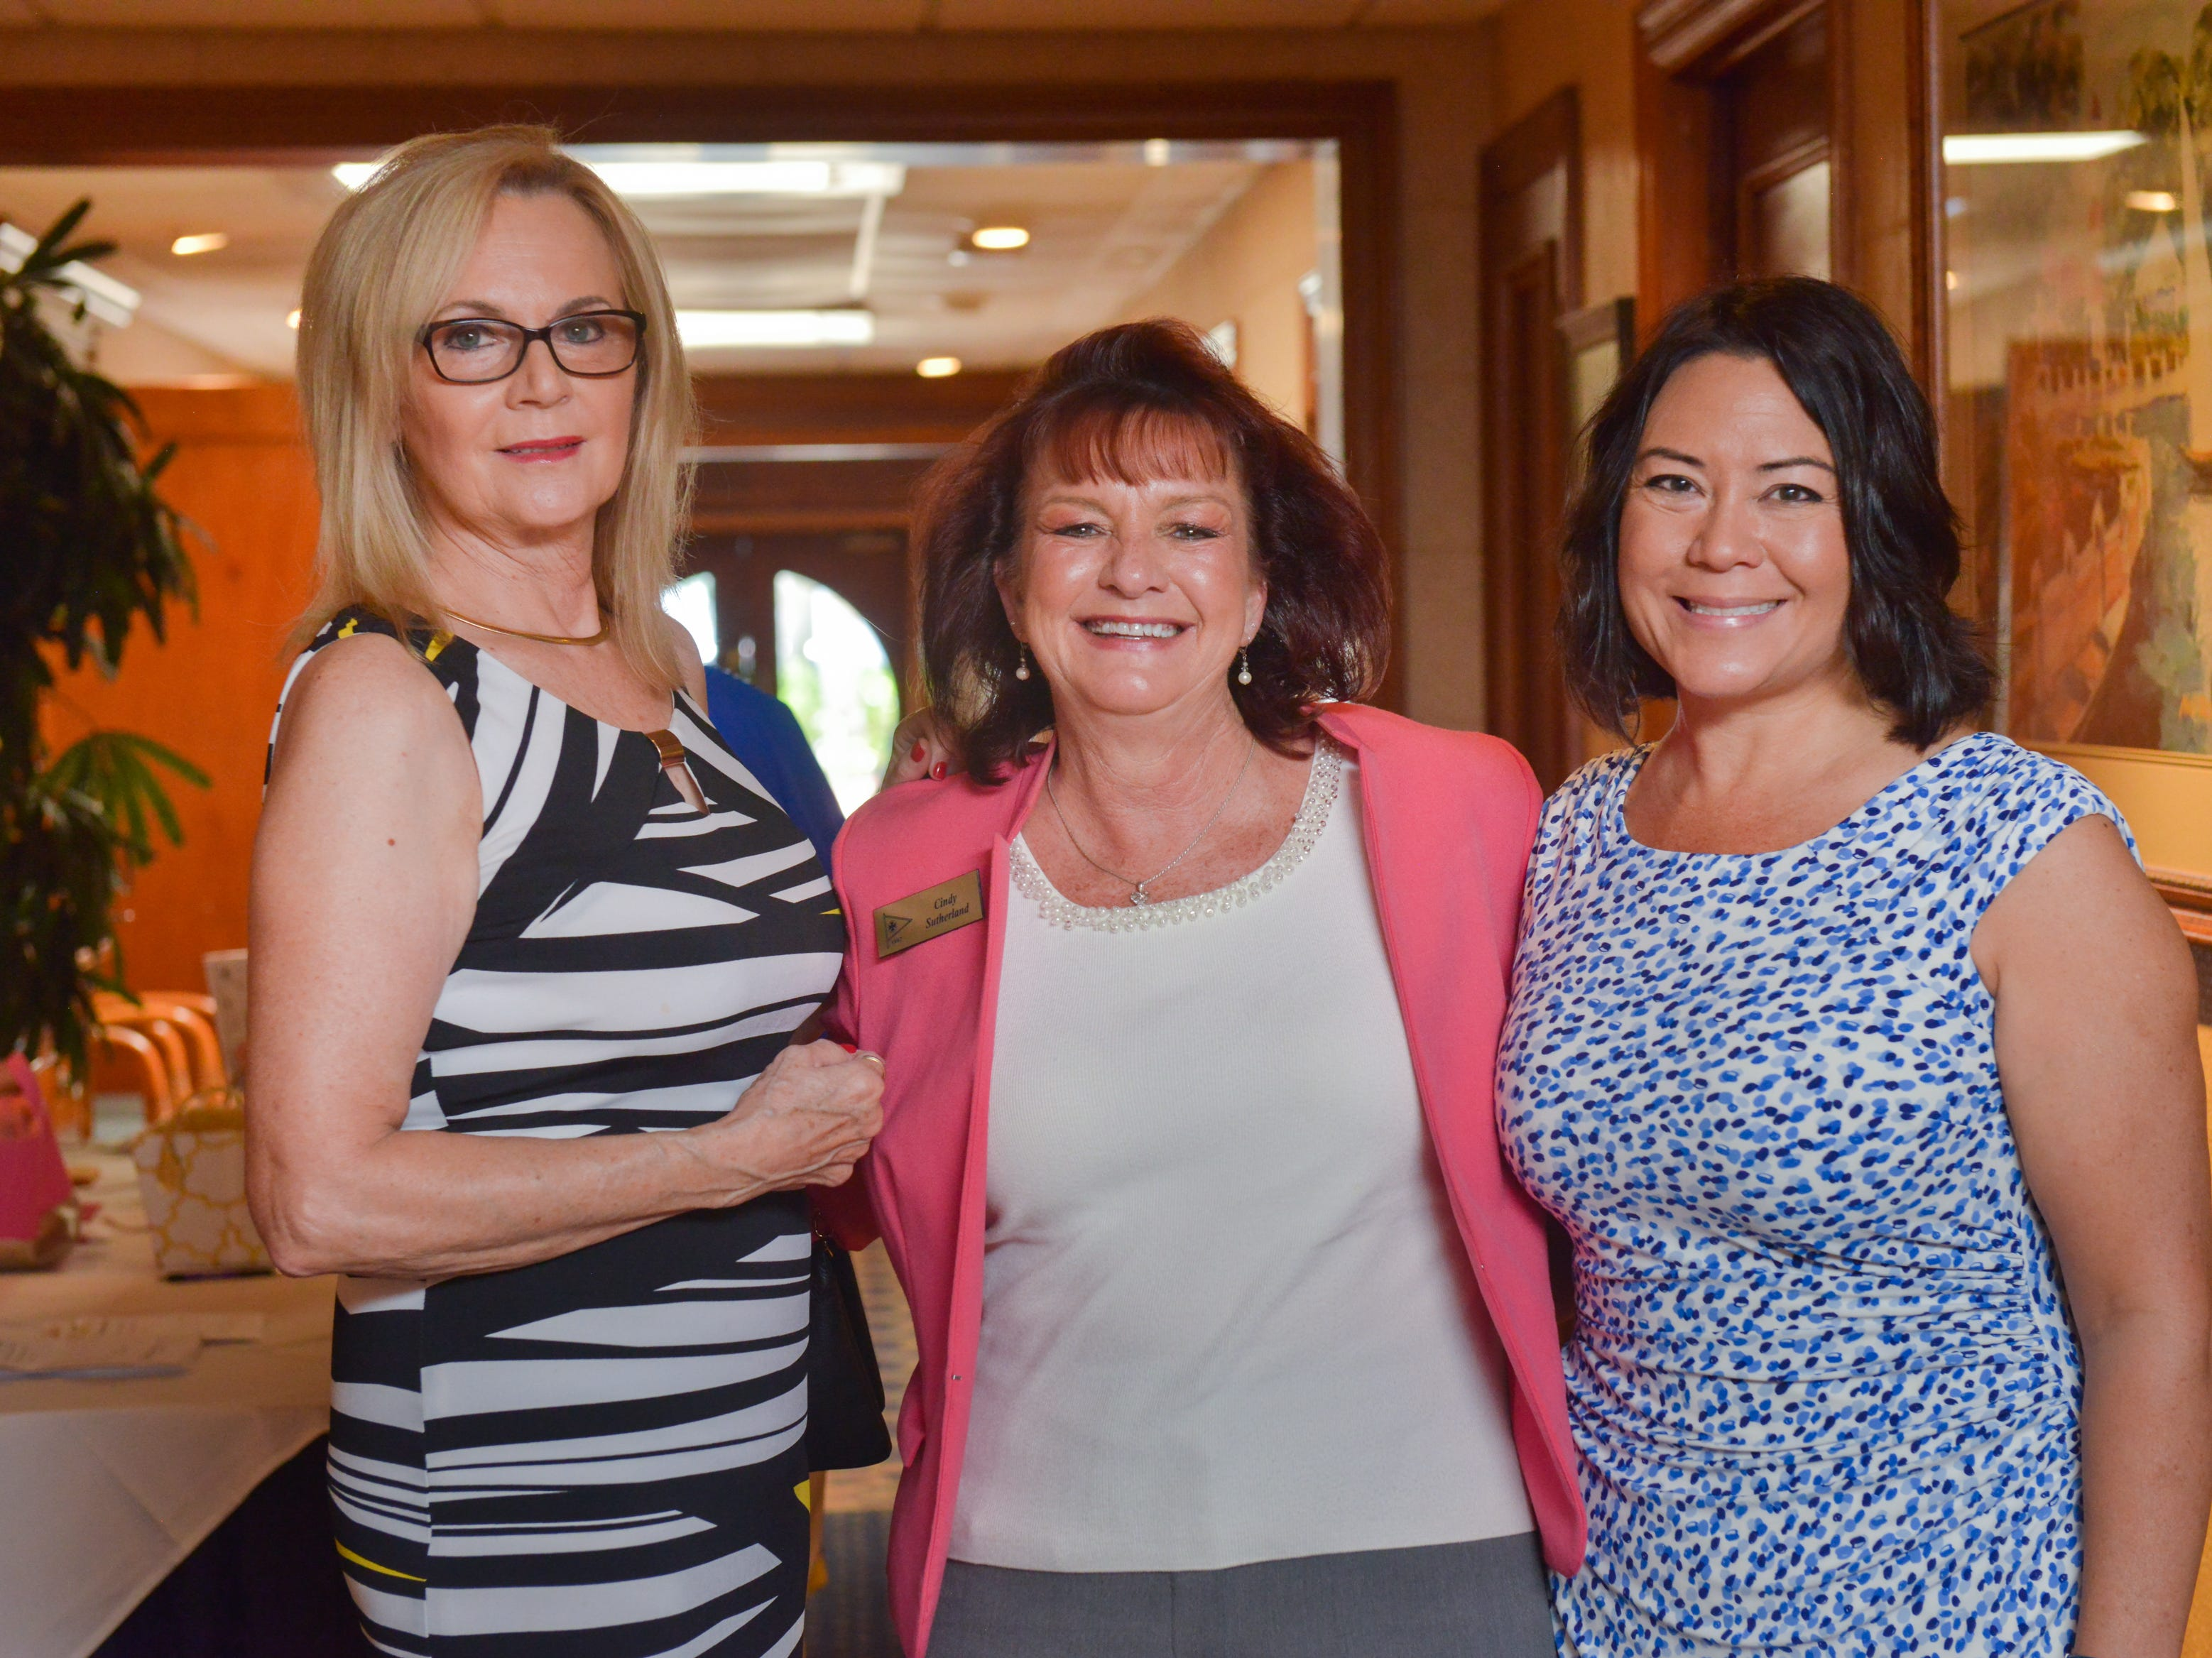 Margo LoZito, Cindy Sutherland and Patti Smith-Cornesky at Friends of Sally's House luncheon at the Eau Gallie Yacht Club.